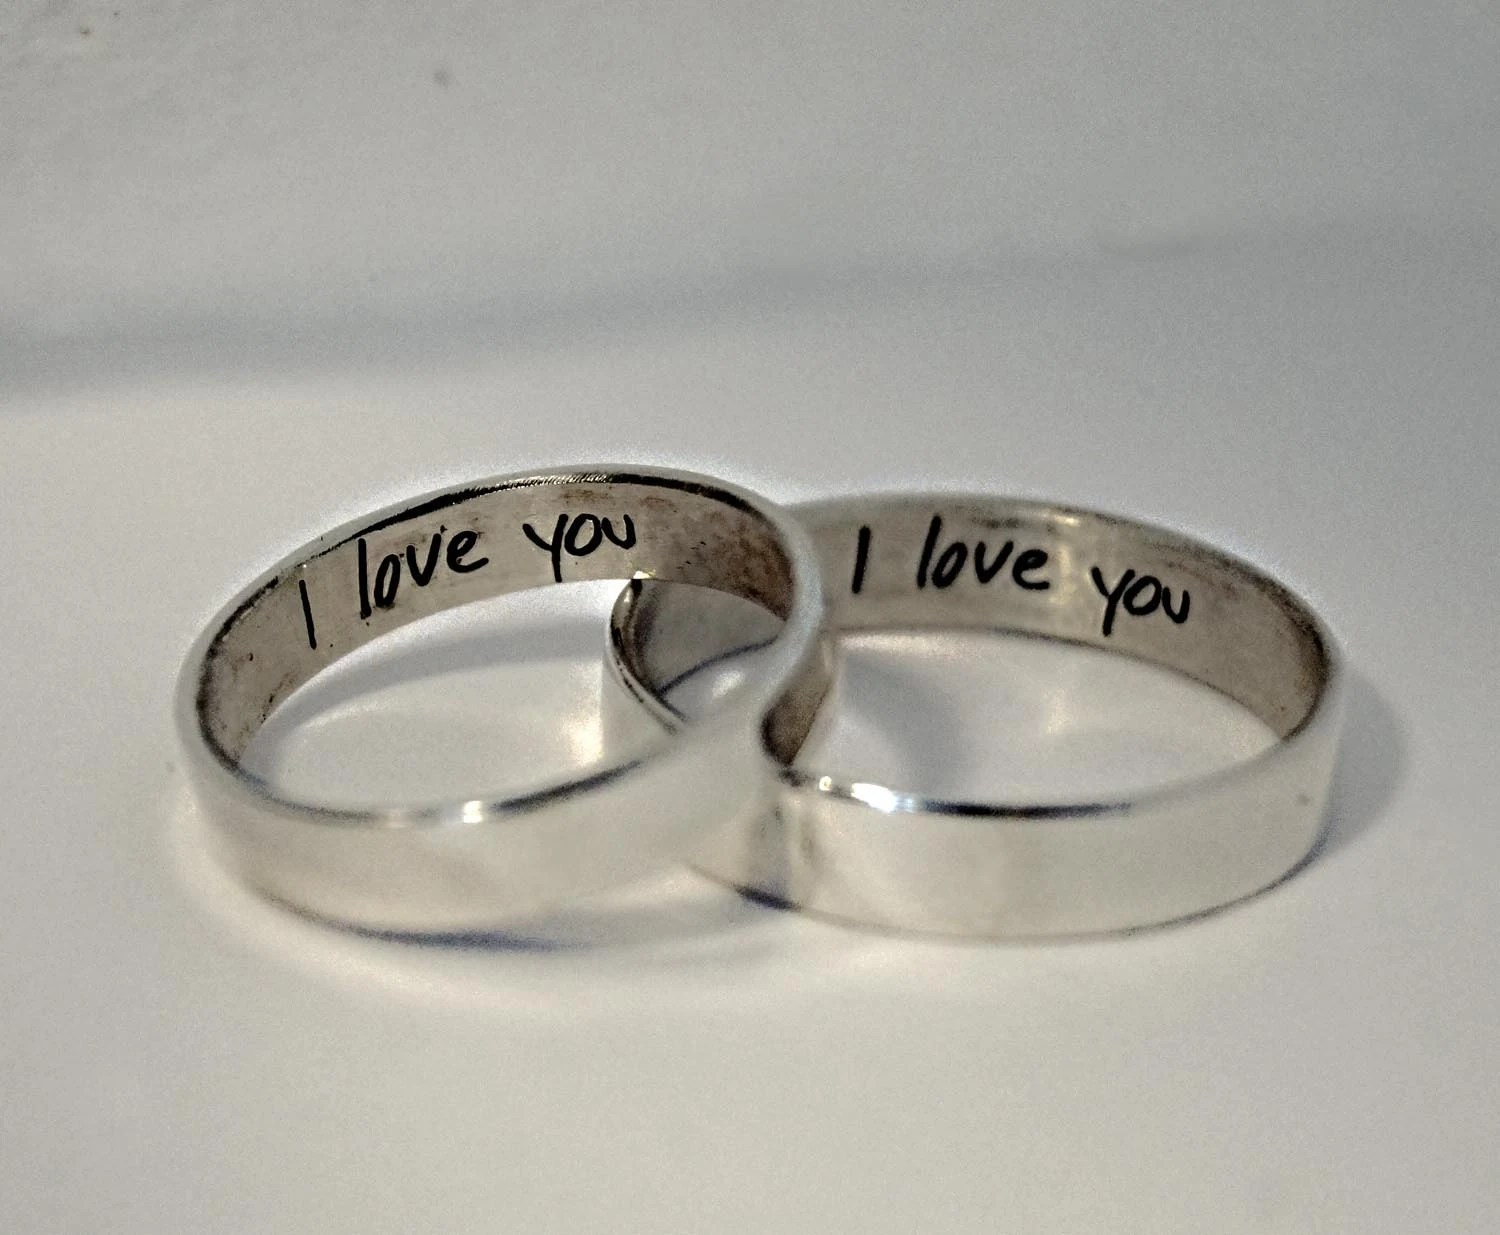 handwriting ring wedding ring engraving His and hers handwriting rings handwritten rings Rings for two custom personalized inscribed engraved wedding rings couples ring